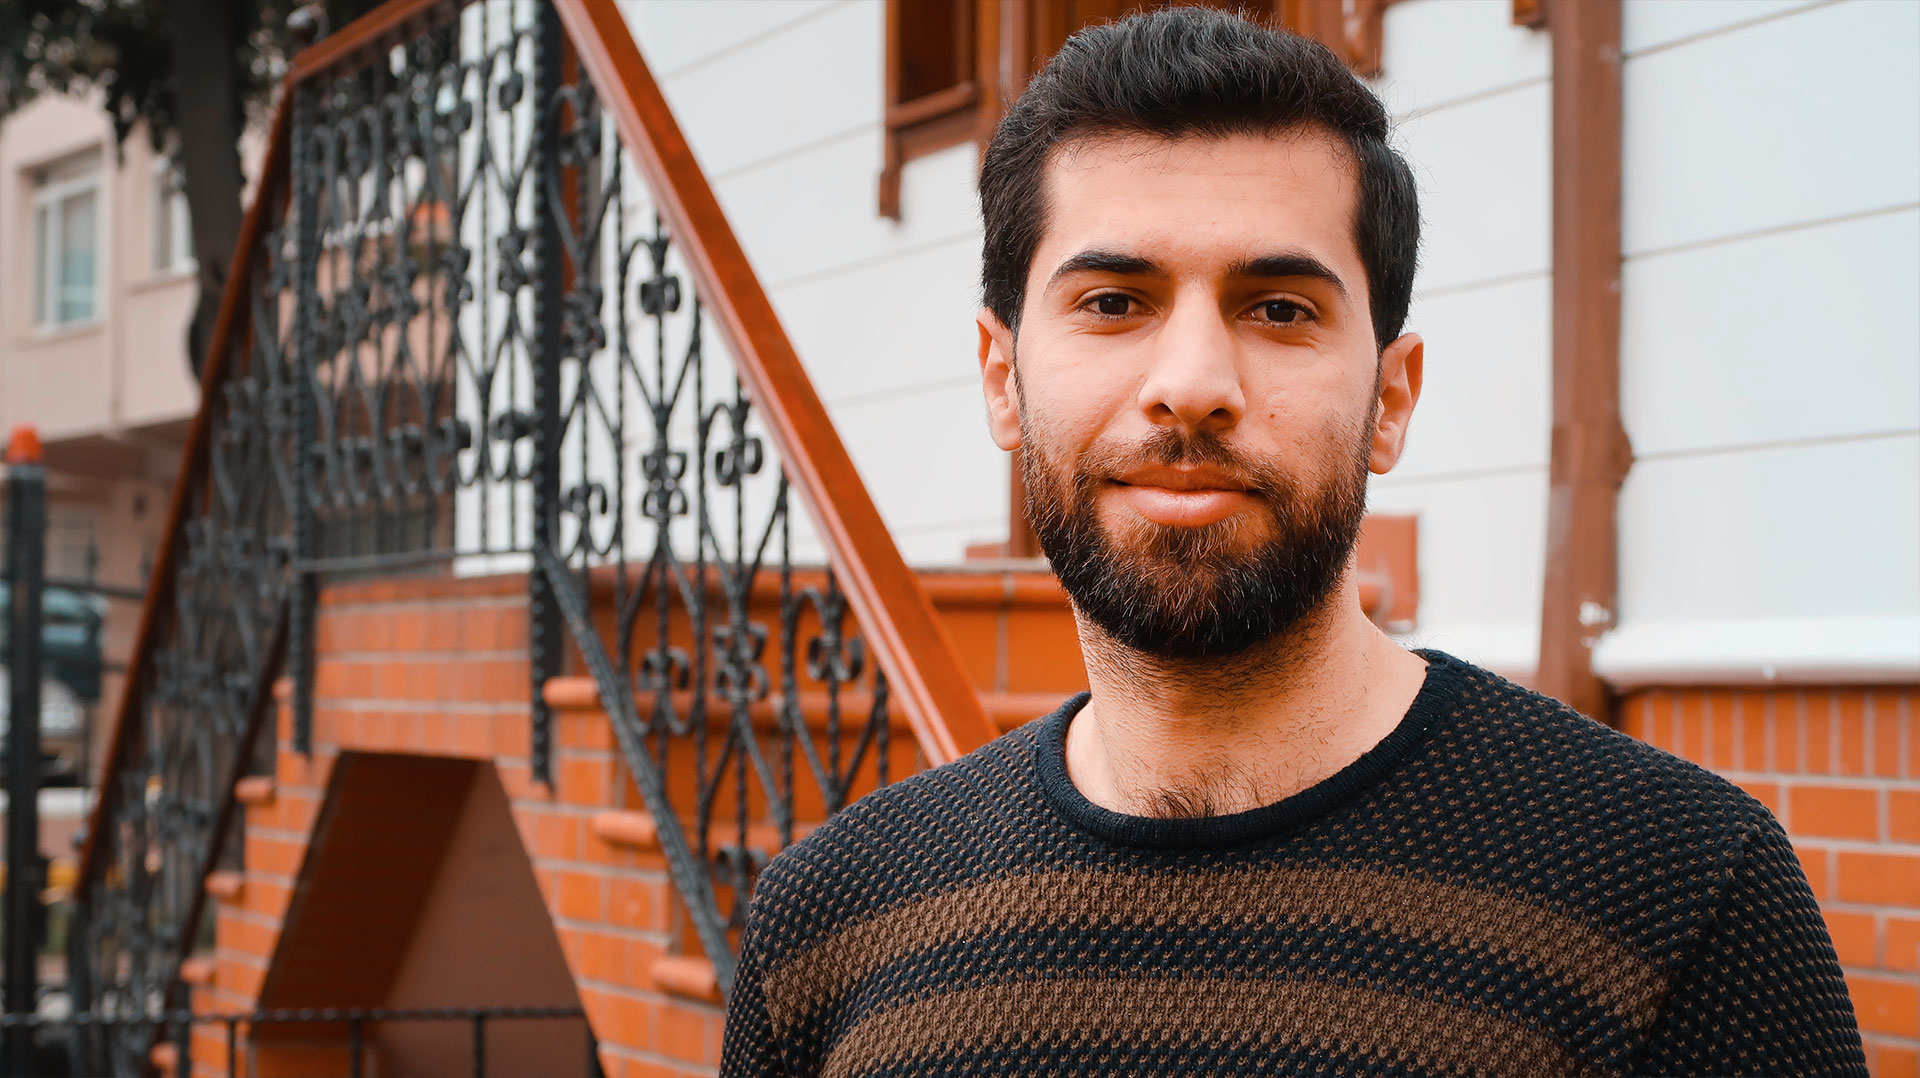 Mustafa Alassaf is from Hama, Syria. He graduated from the Faculty of Architecture from Homs University in 2015 and then taught architecture at Hama University. He also worked as a volunteer with non-profit organizations that aid internally displaced people in Syria. At the end of 2016, Mustafa moved to Turkey. He believes that everyone has a creative seed inside them and the right to receive adequate education. In his free time, Mustafa loves adventure, discovering new things, running, and riding in cars.